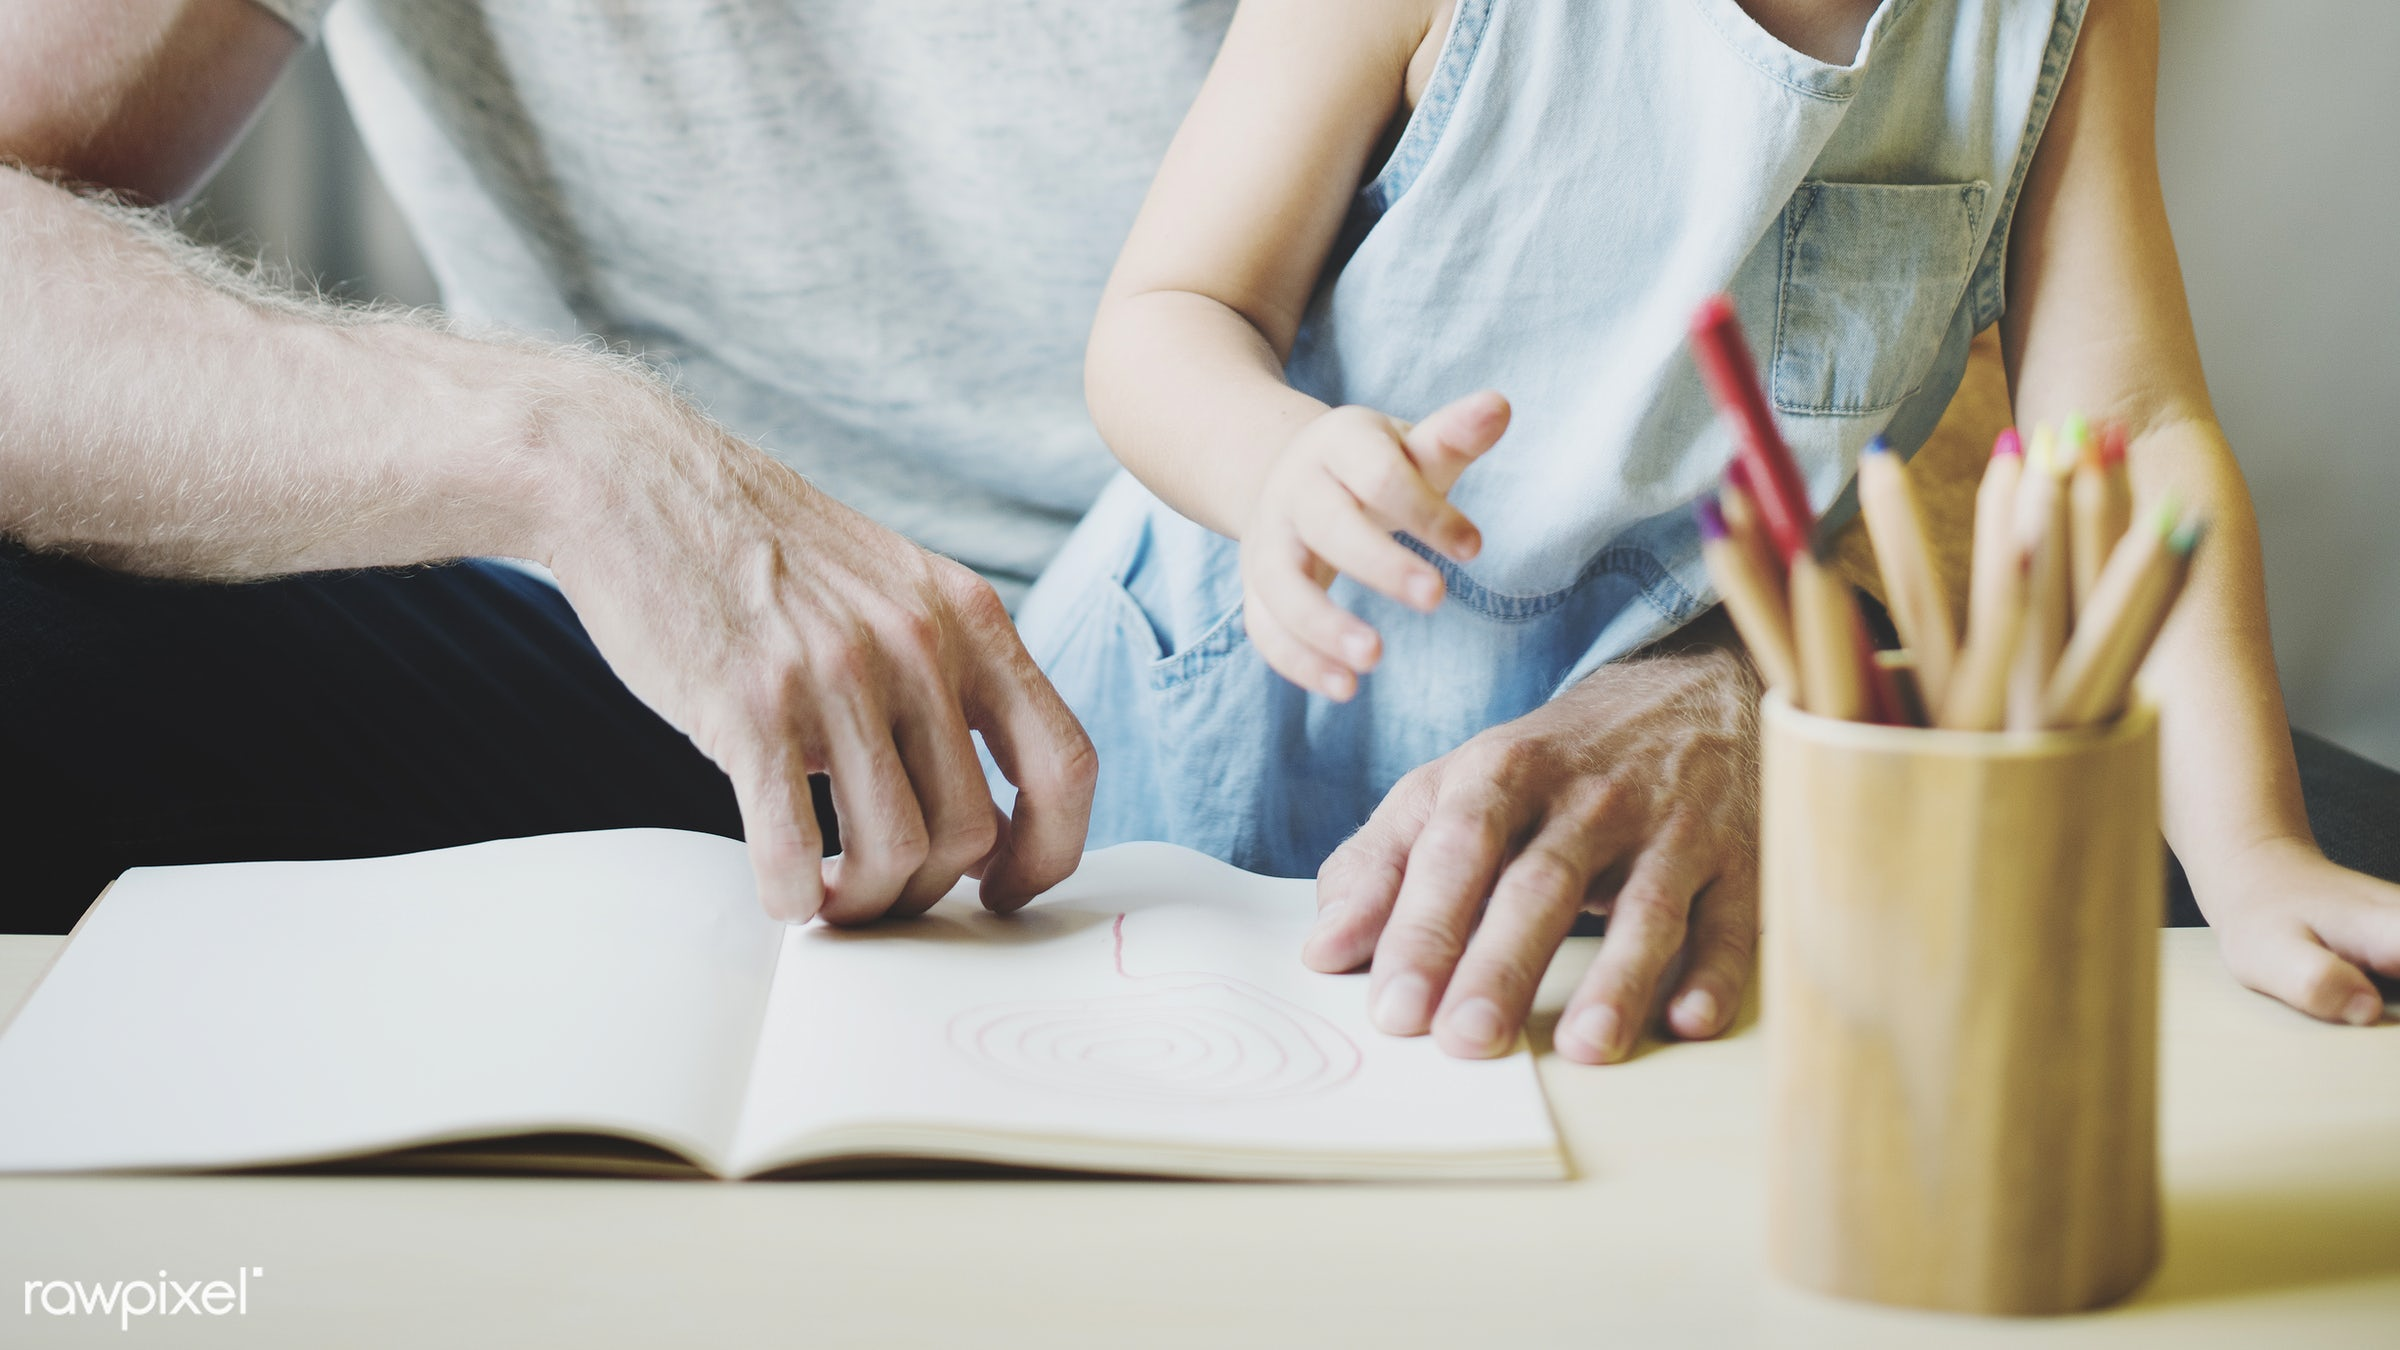 activity, art, bonding, book, carefree, casual, cheerful, child, childhood, communication, create, dad, daddy, daughter,...